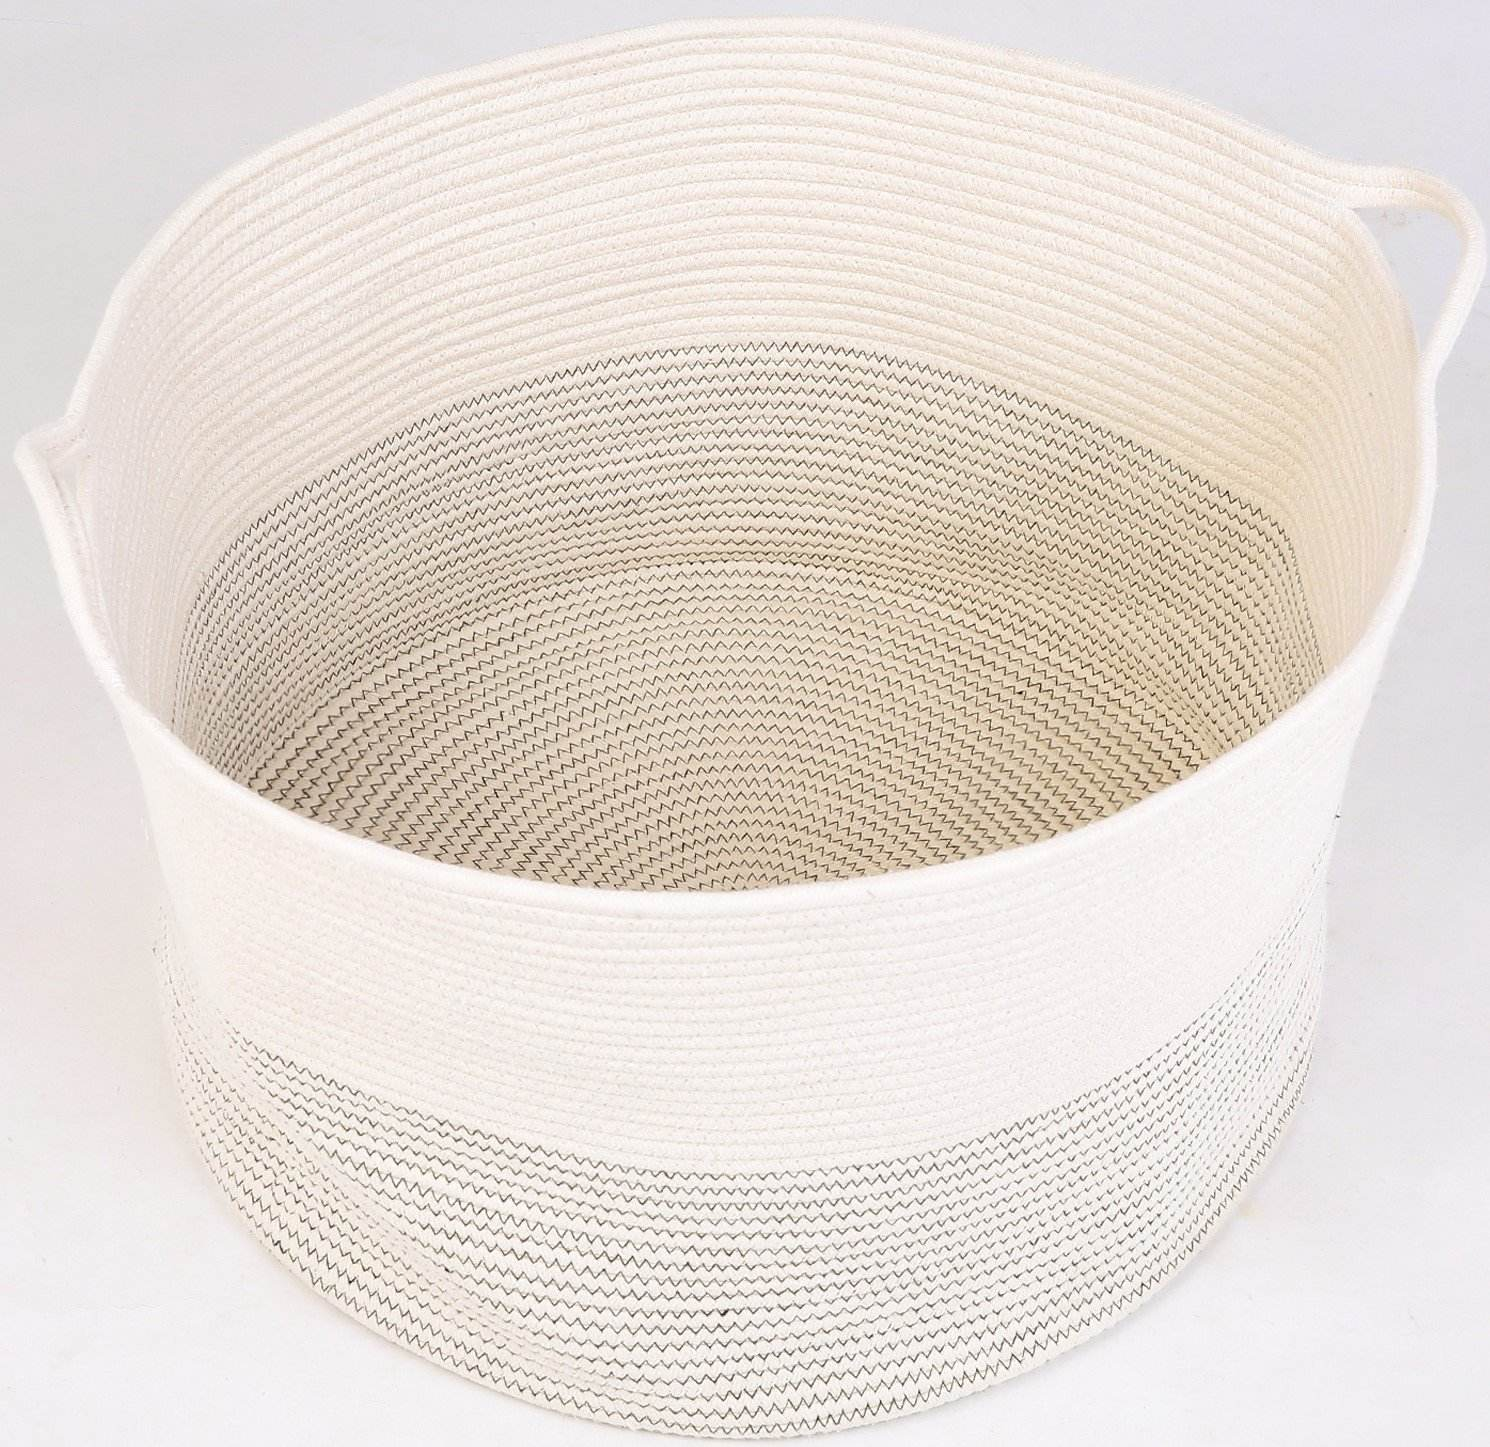 Round Cotton Rope Basket Baby Laundry Woven Basket with Handle for Throw Toy